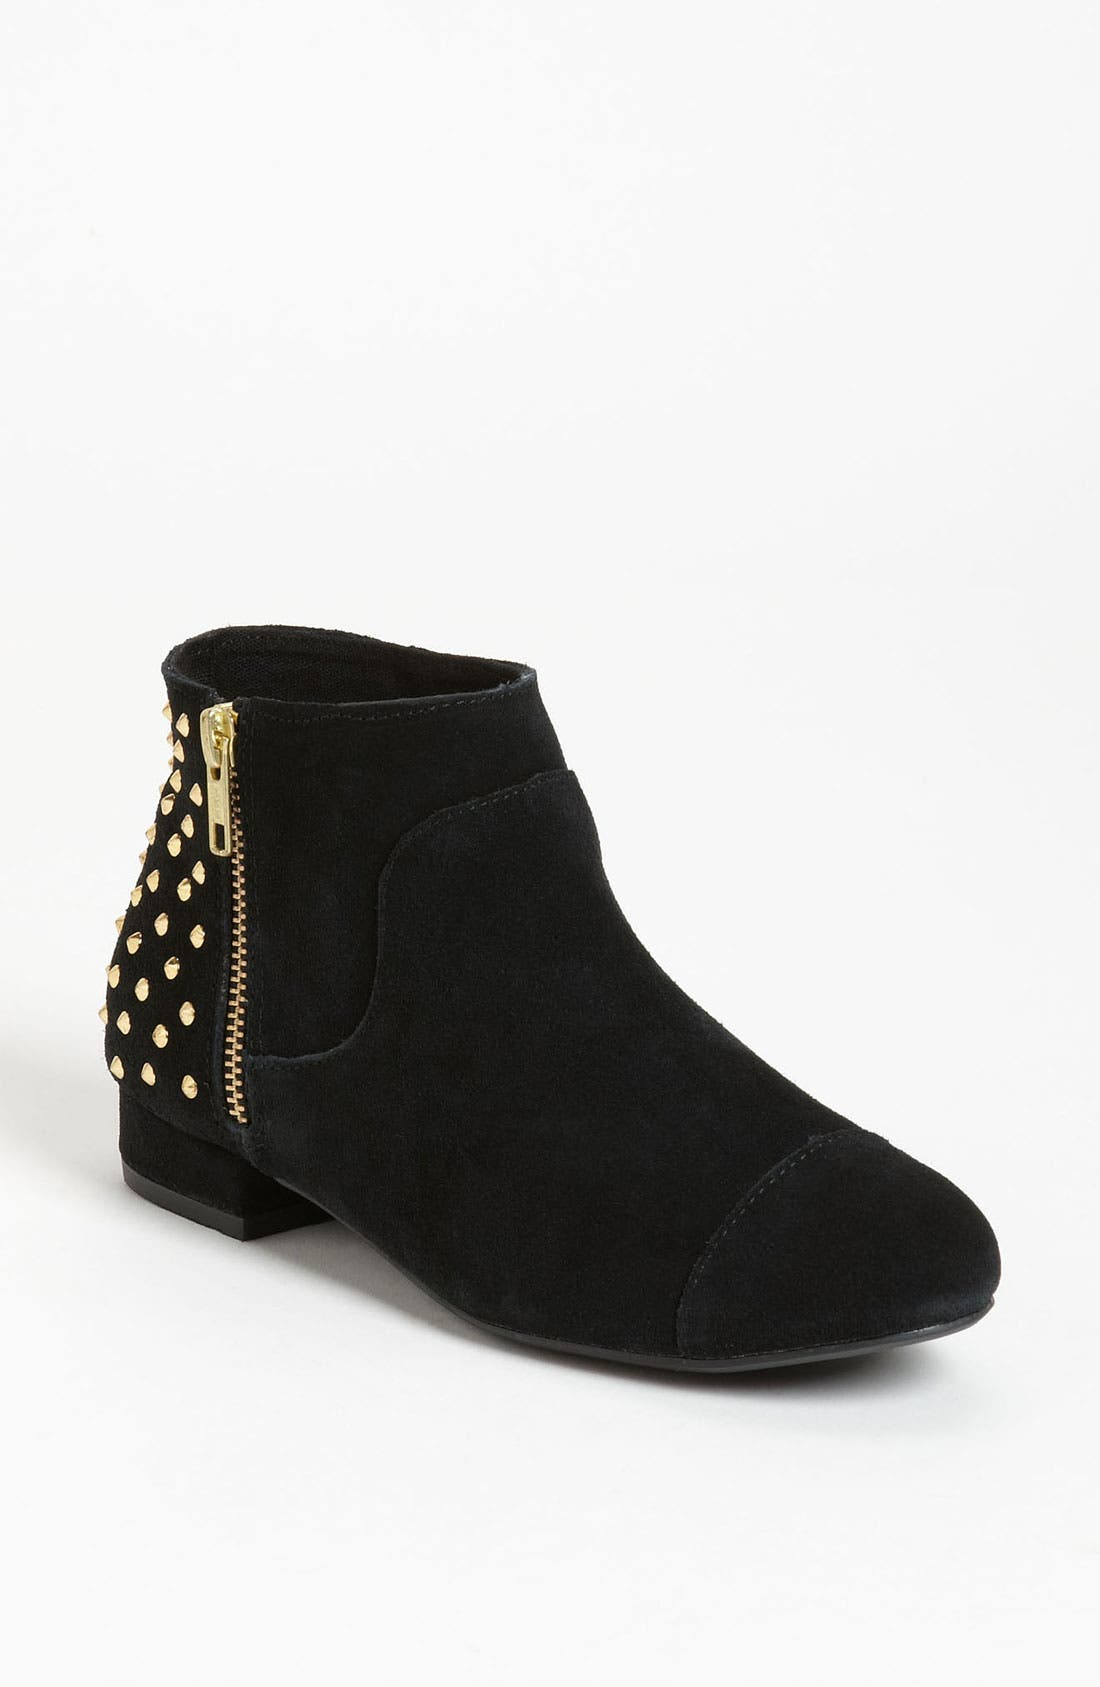 Alternate Image 1 Selected - Topshop 'Millicent' Boot